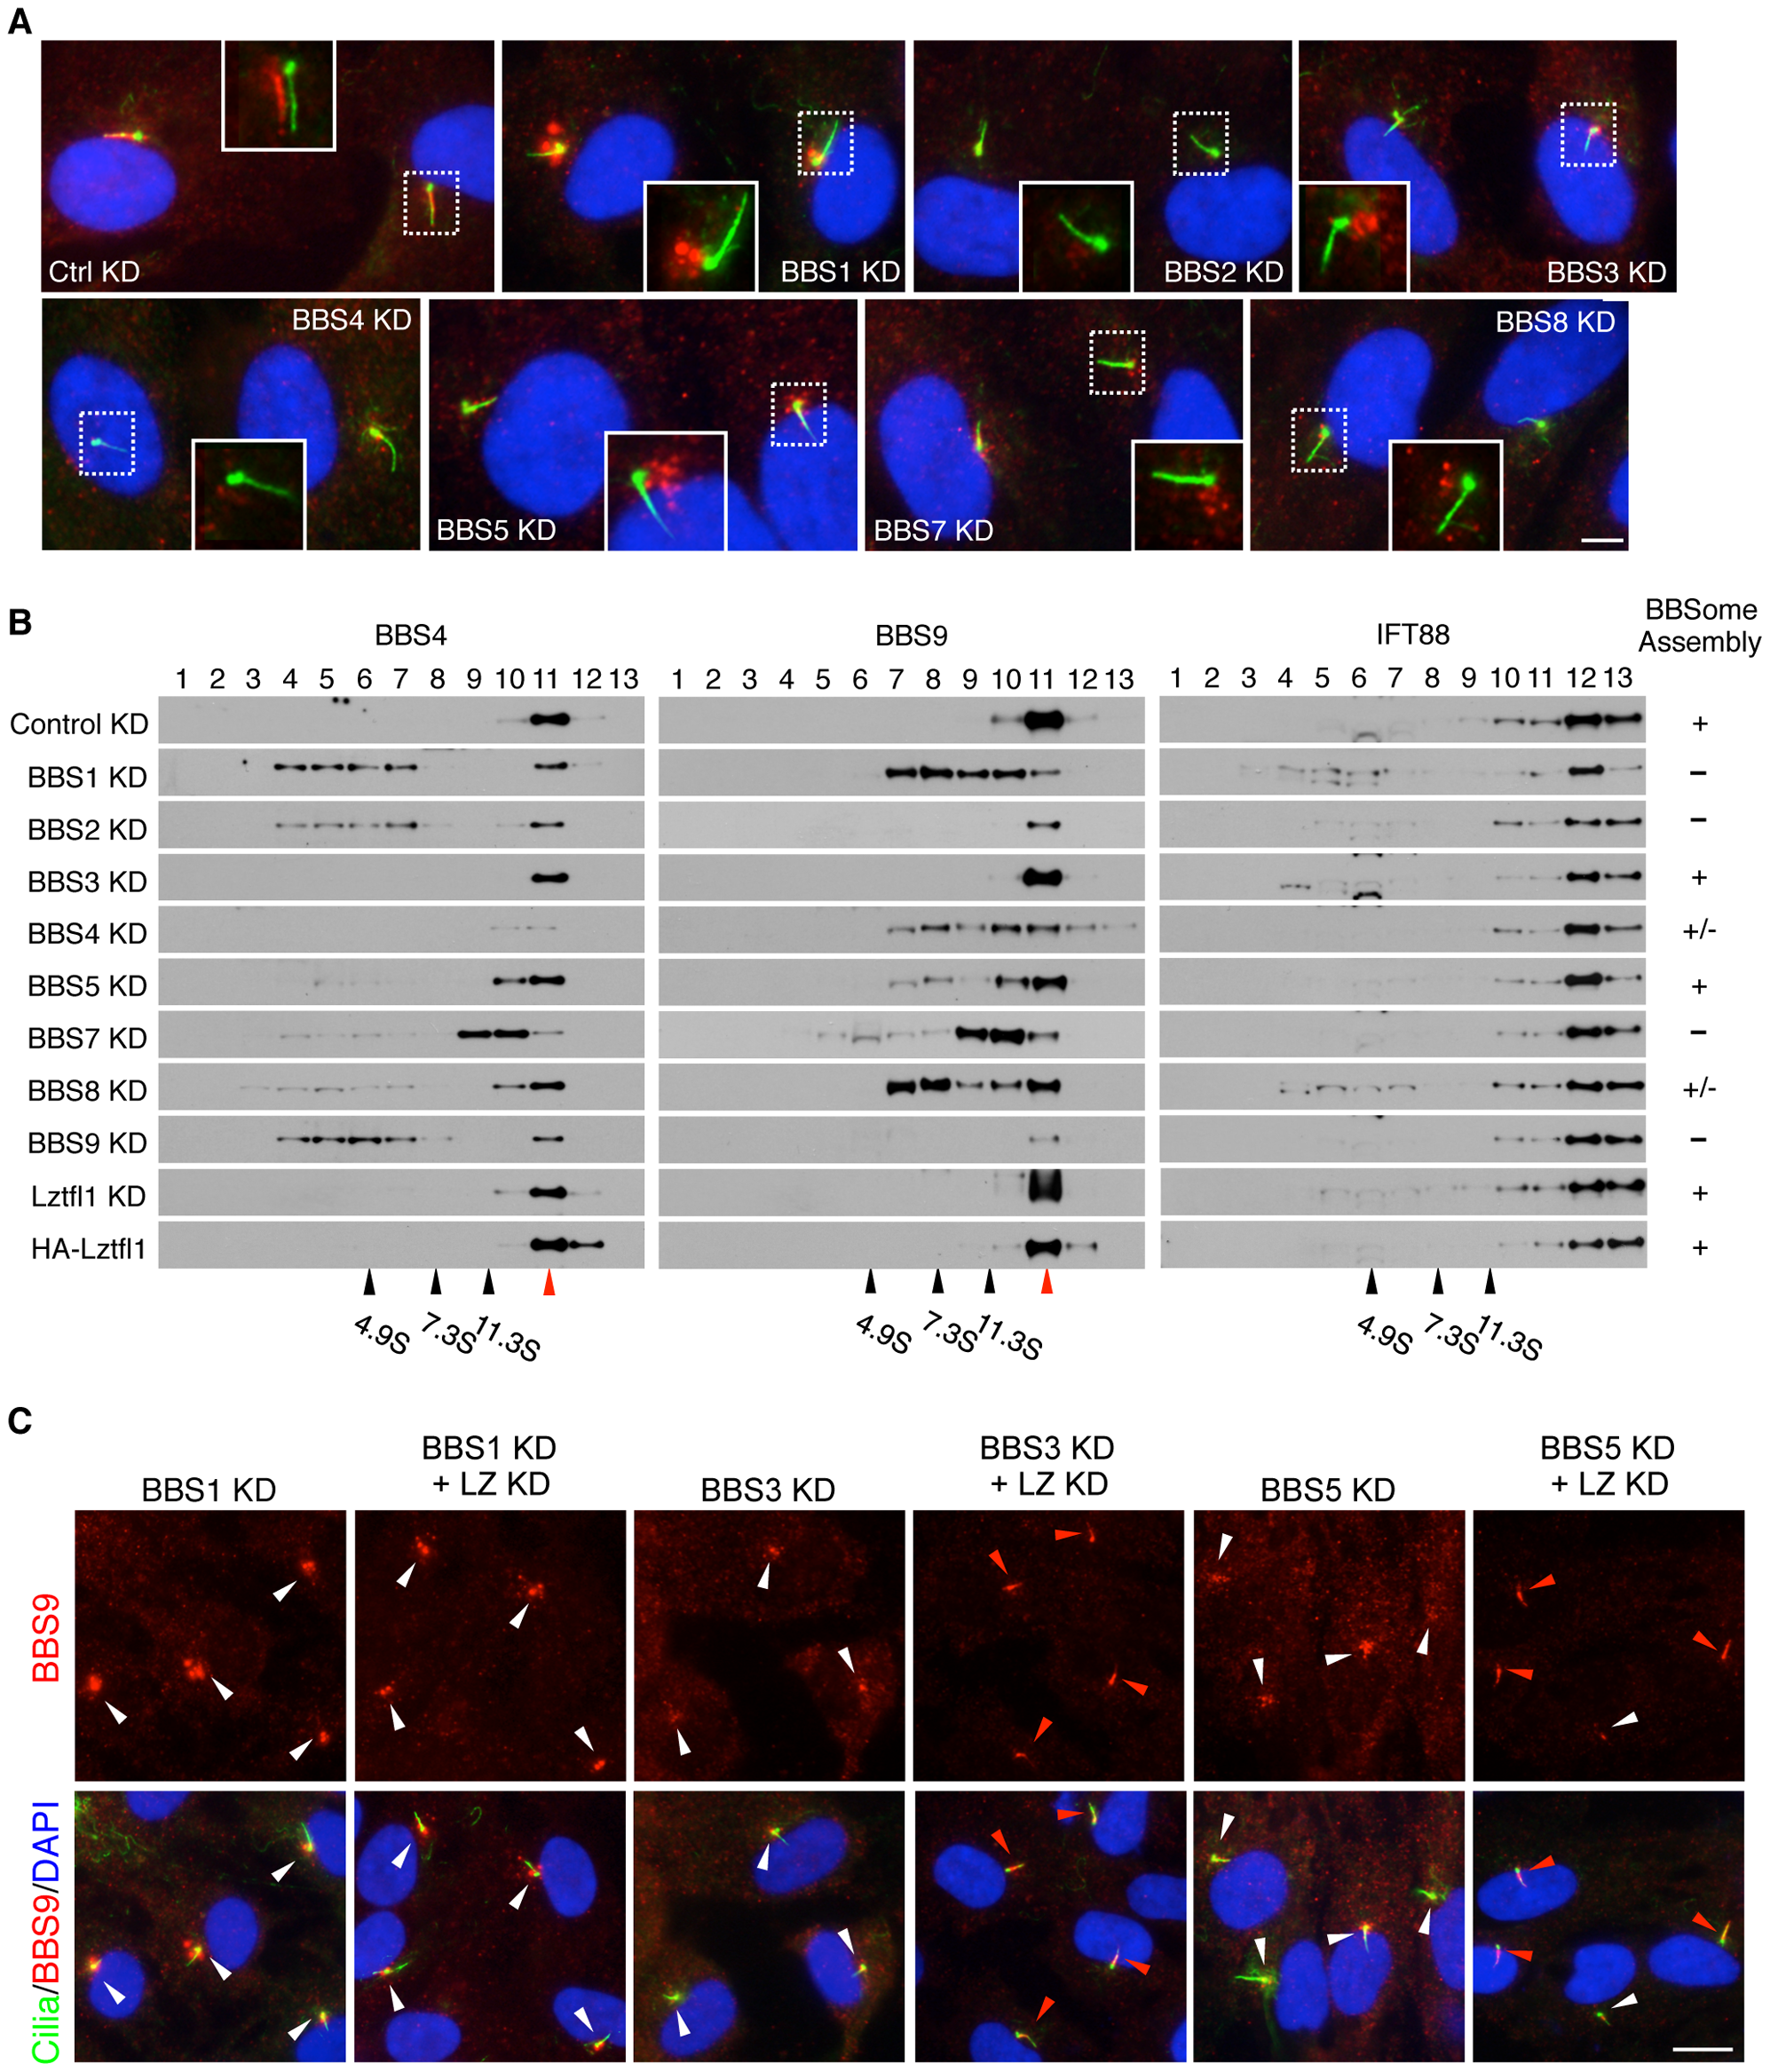 Reduction of LZTFL1 activity restores BBSome ciliary trafficking in BBS3 and BBS5 depleted cells.